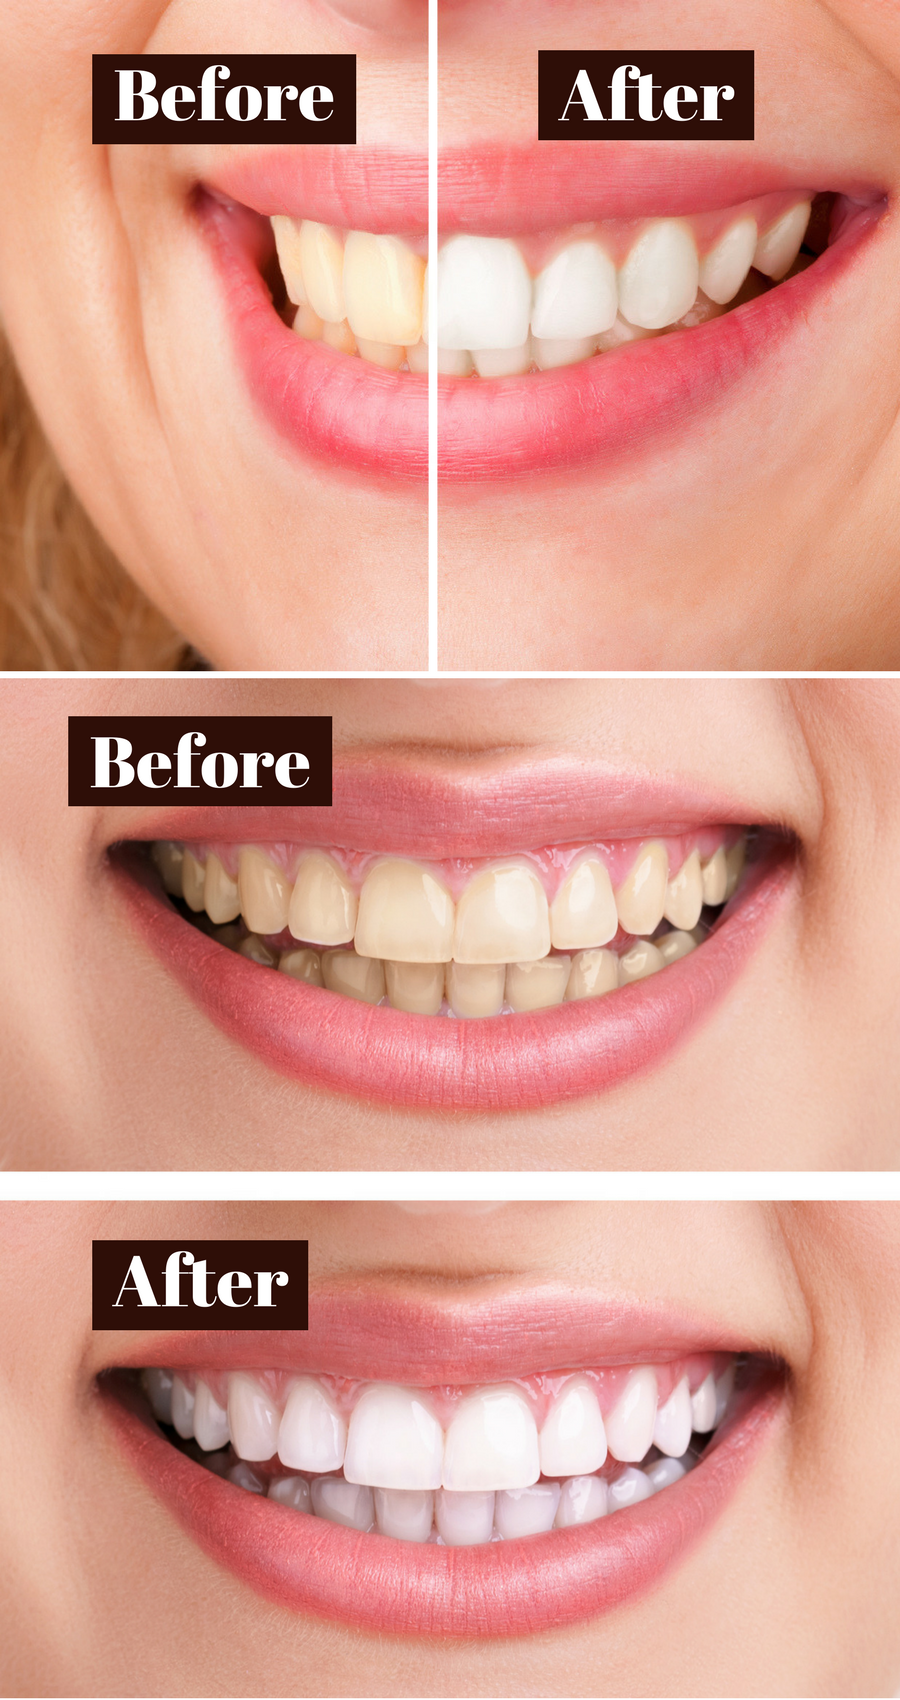 How To Whiten Teeth With Baking Soda And Hydrogen Peroxide Share